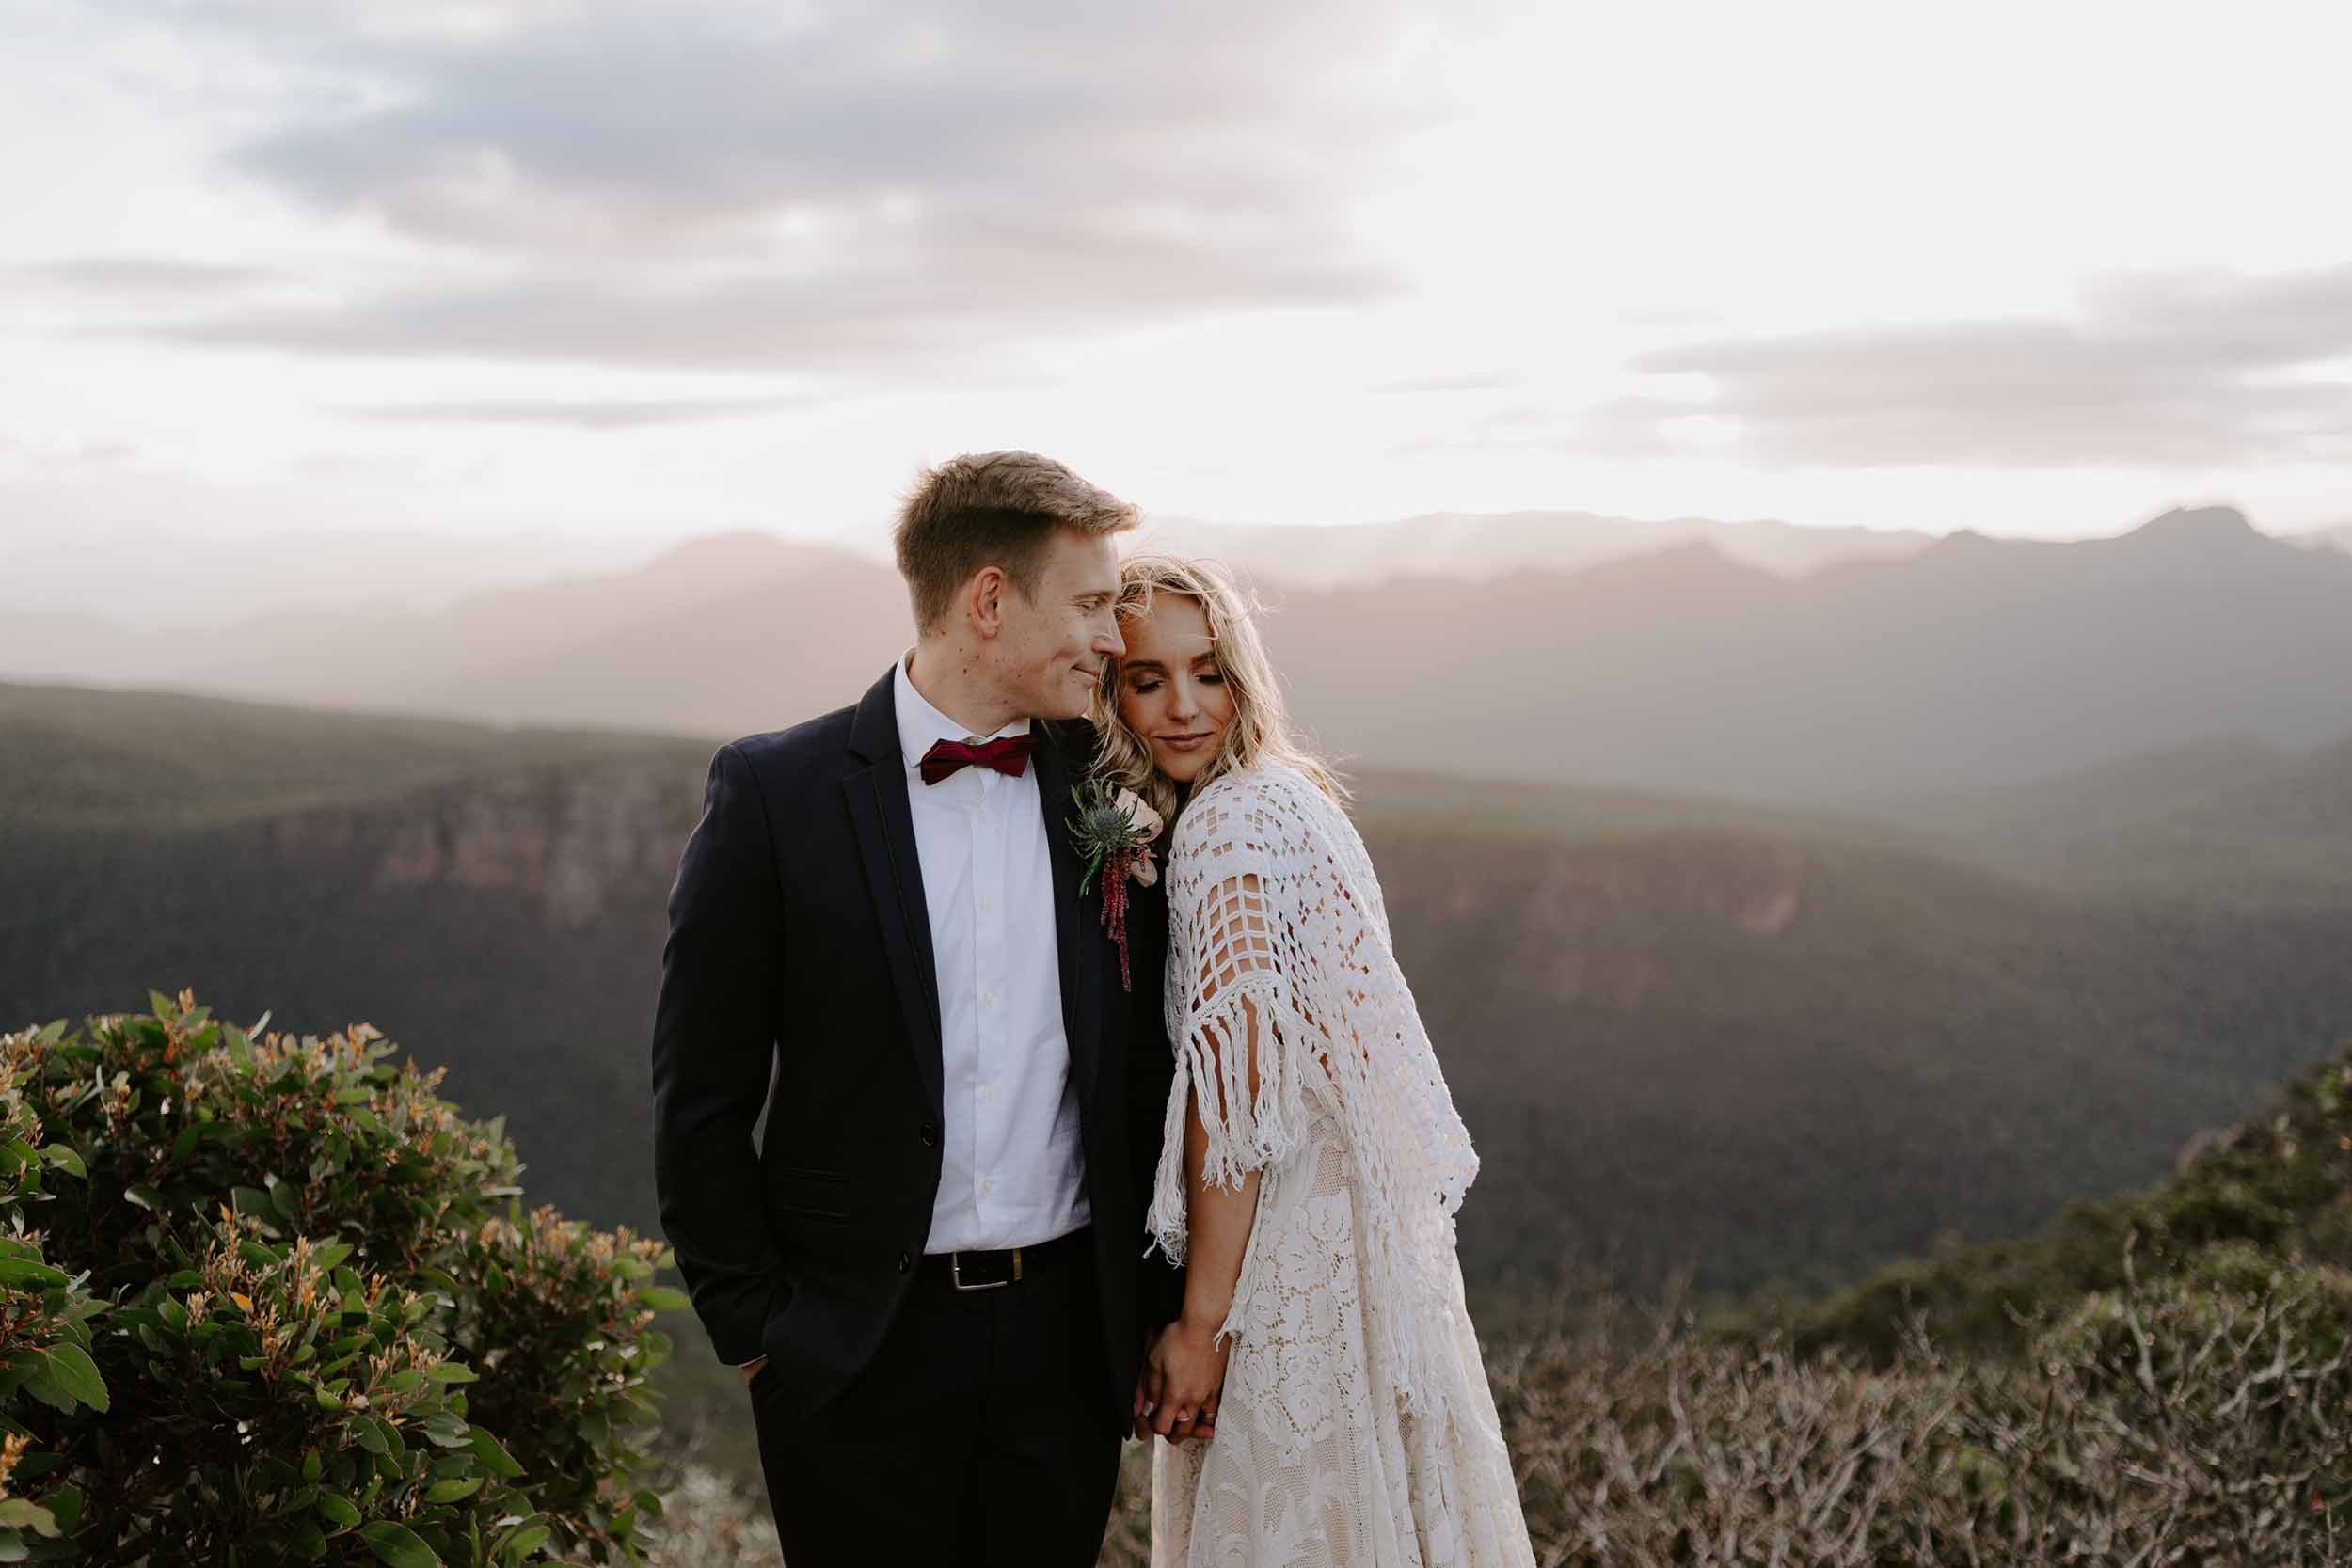 Melbourne elopement photographers melbadseyco